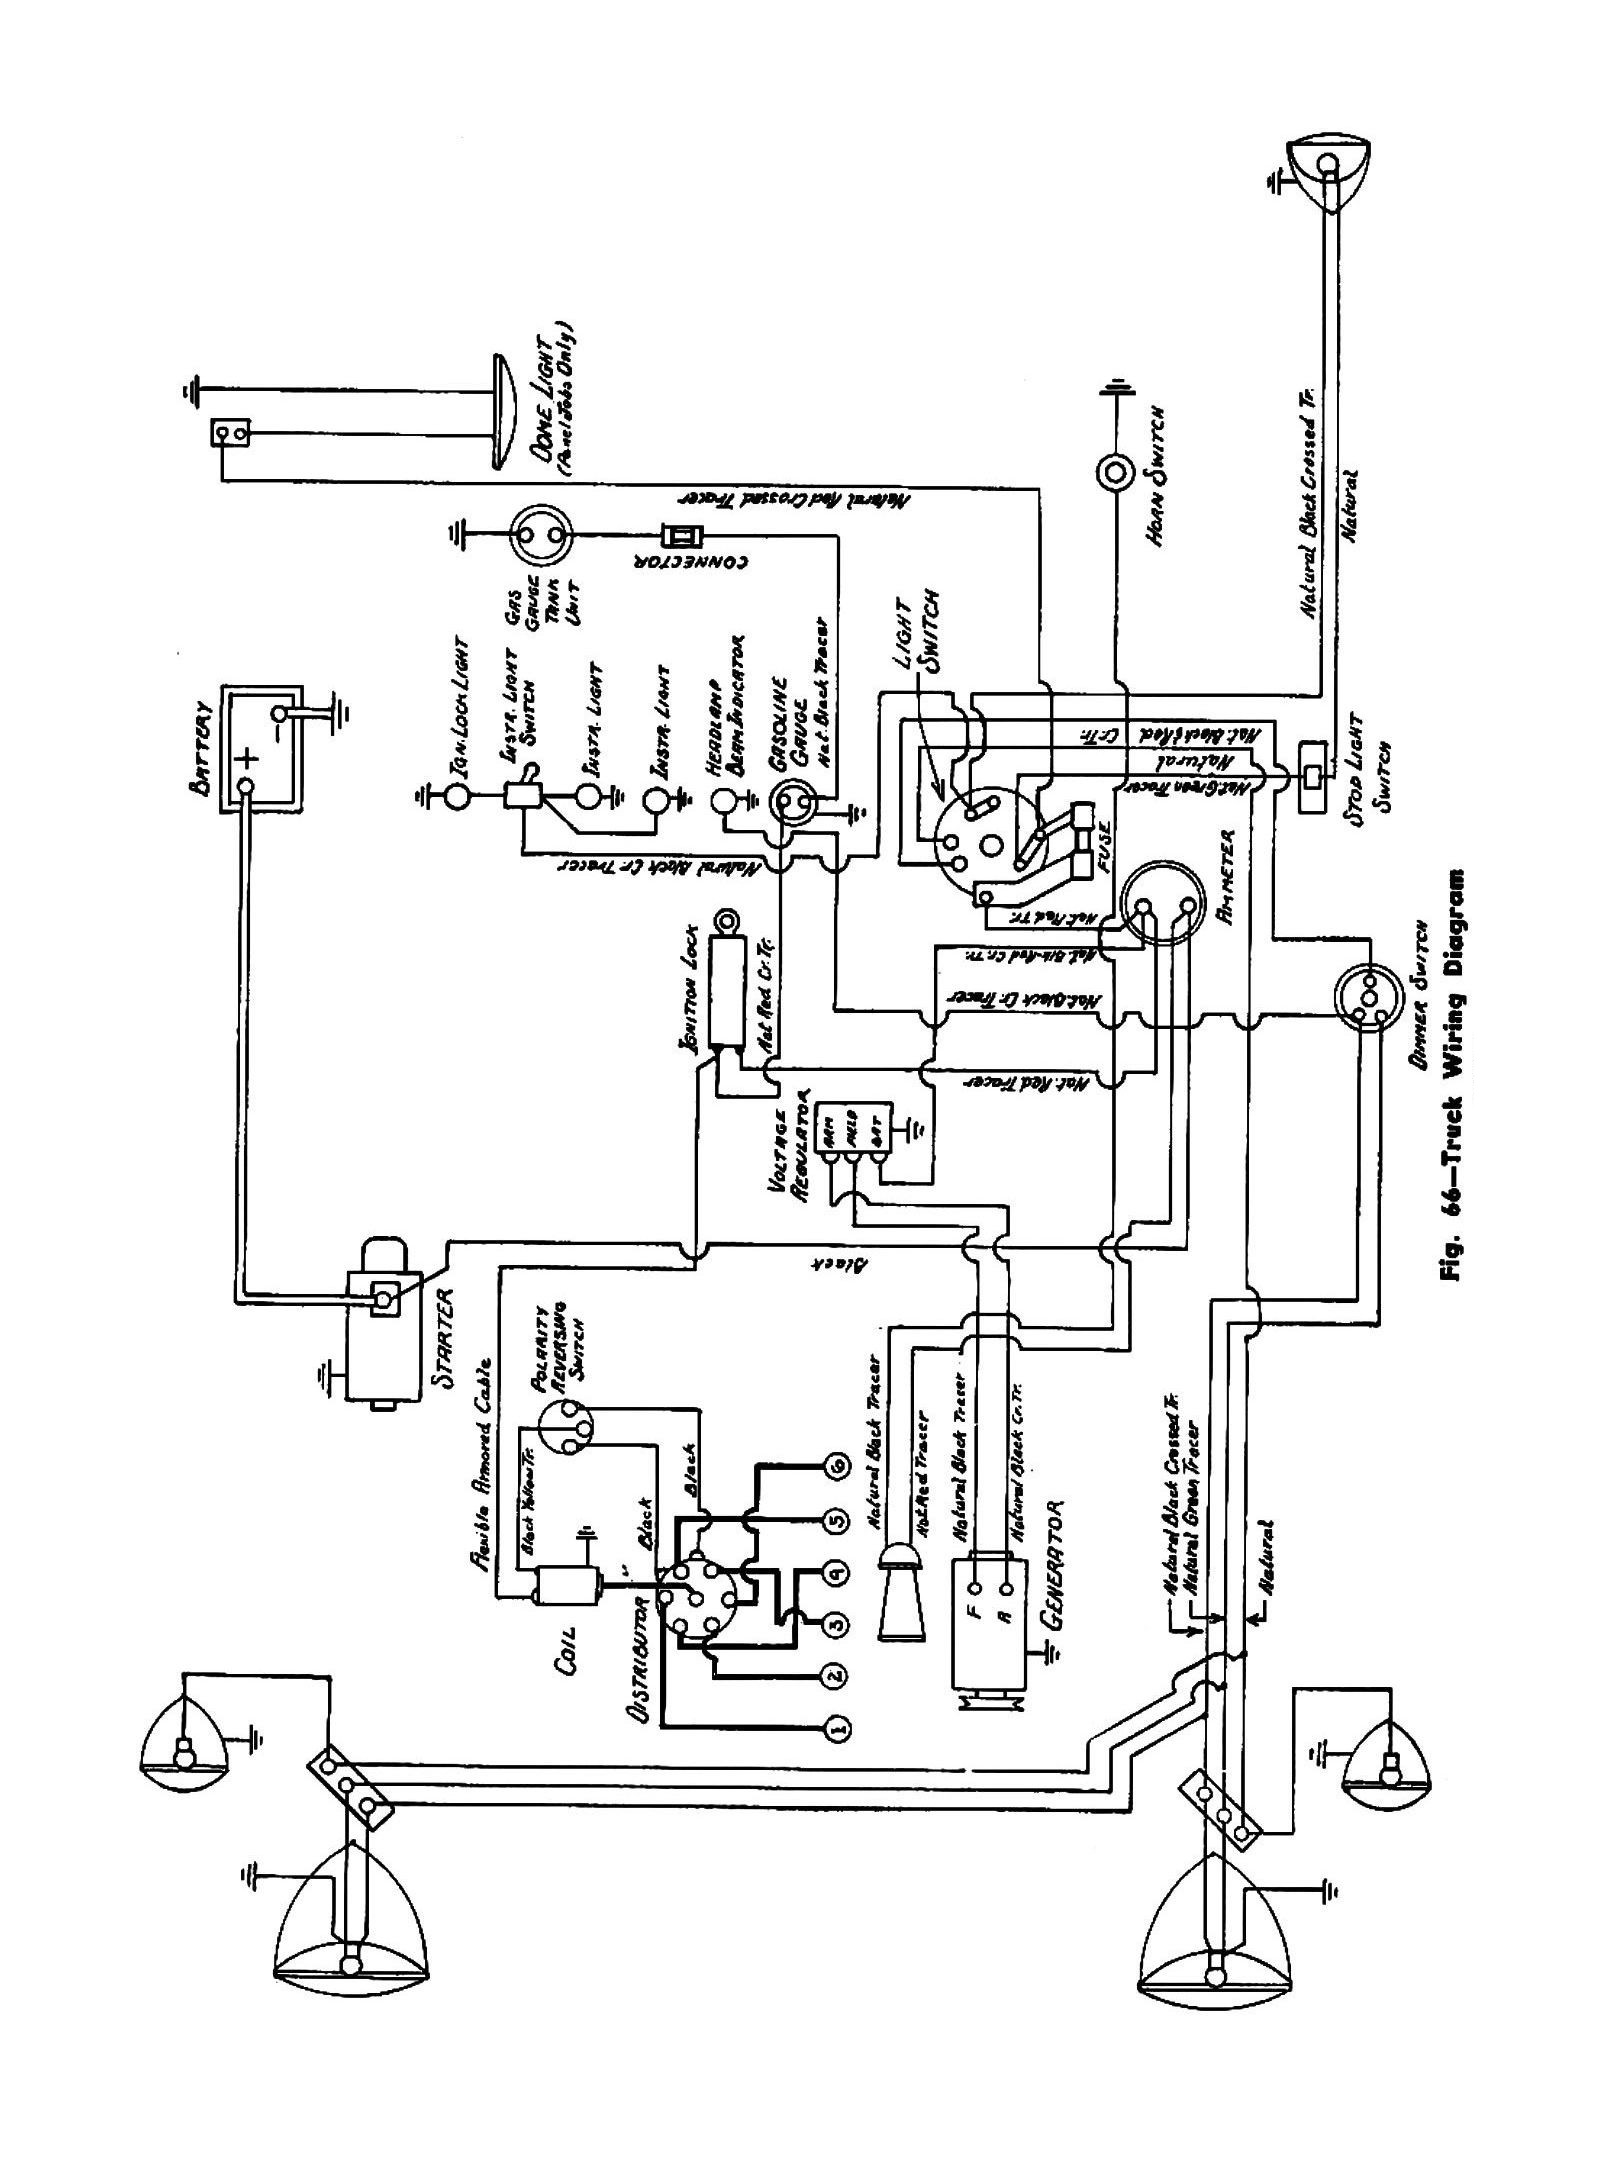 1954 Chevy 3100 Truck Wiring Harness Diagram - Wiring Diagram M2 on